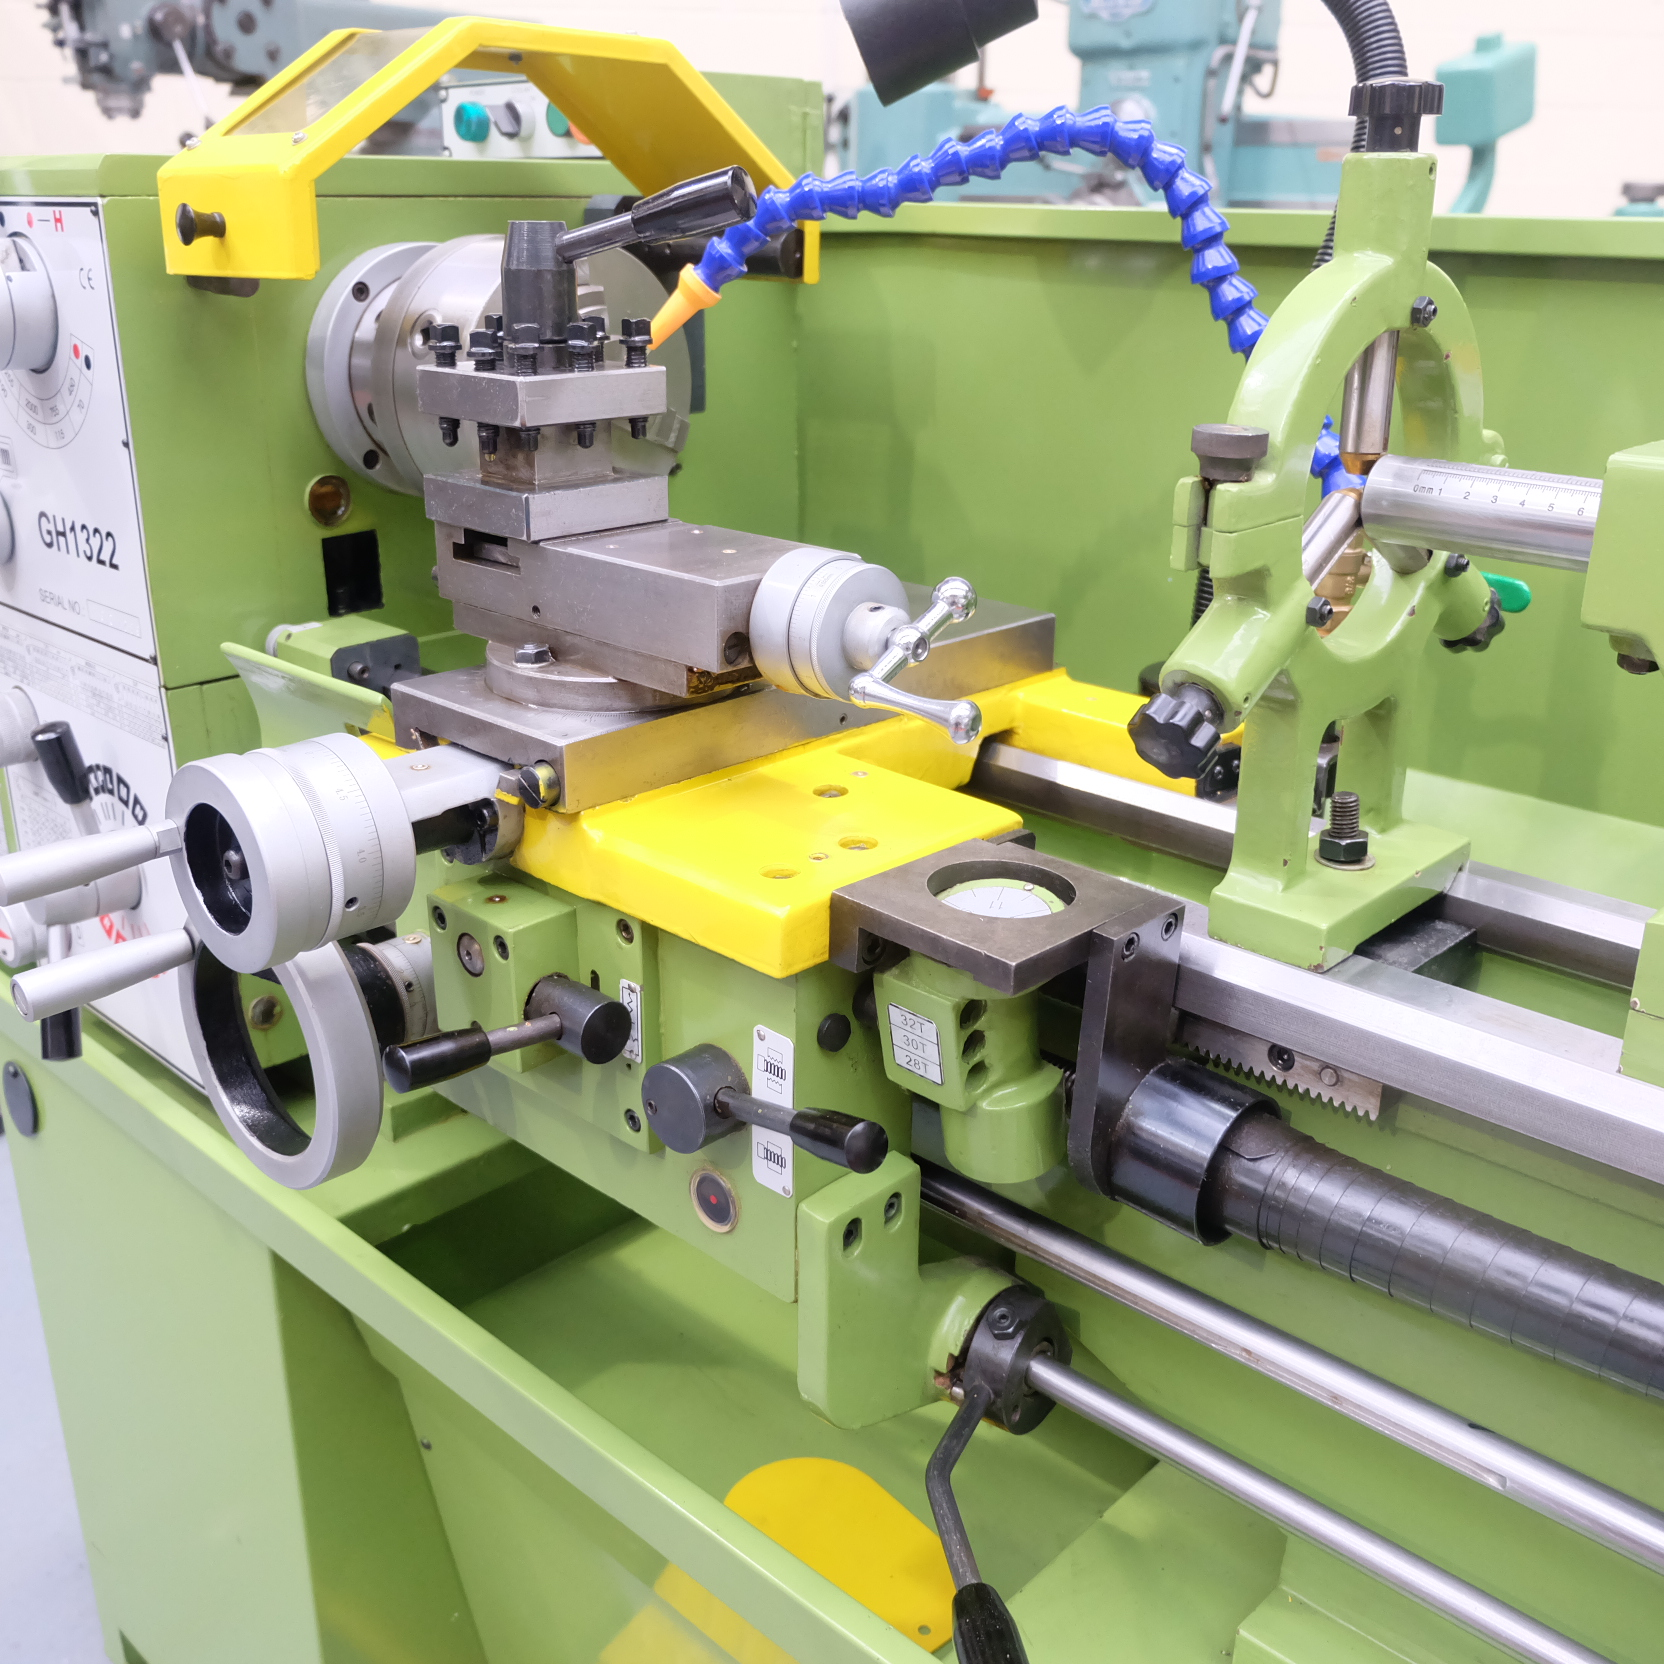 Warco Model GH 1322: Gap Bed Centre Lathe. - Image 5 of 10